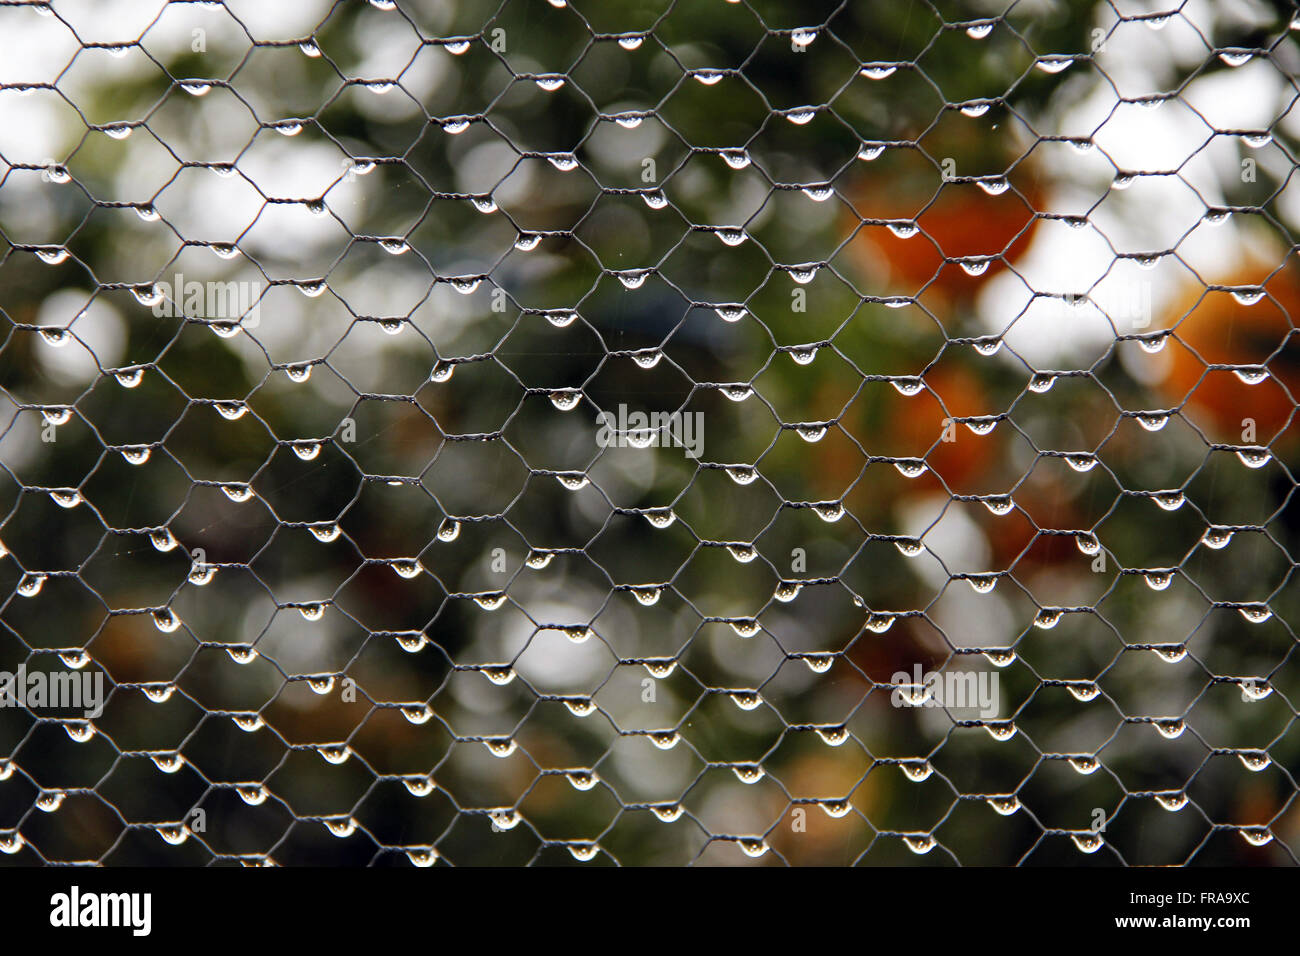 Wire screen with dew drops - Stock Image